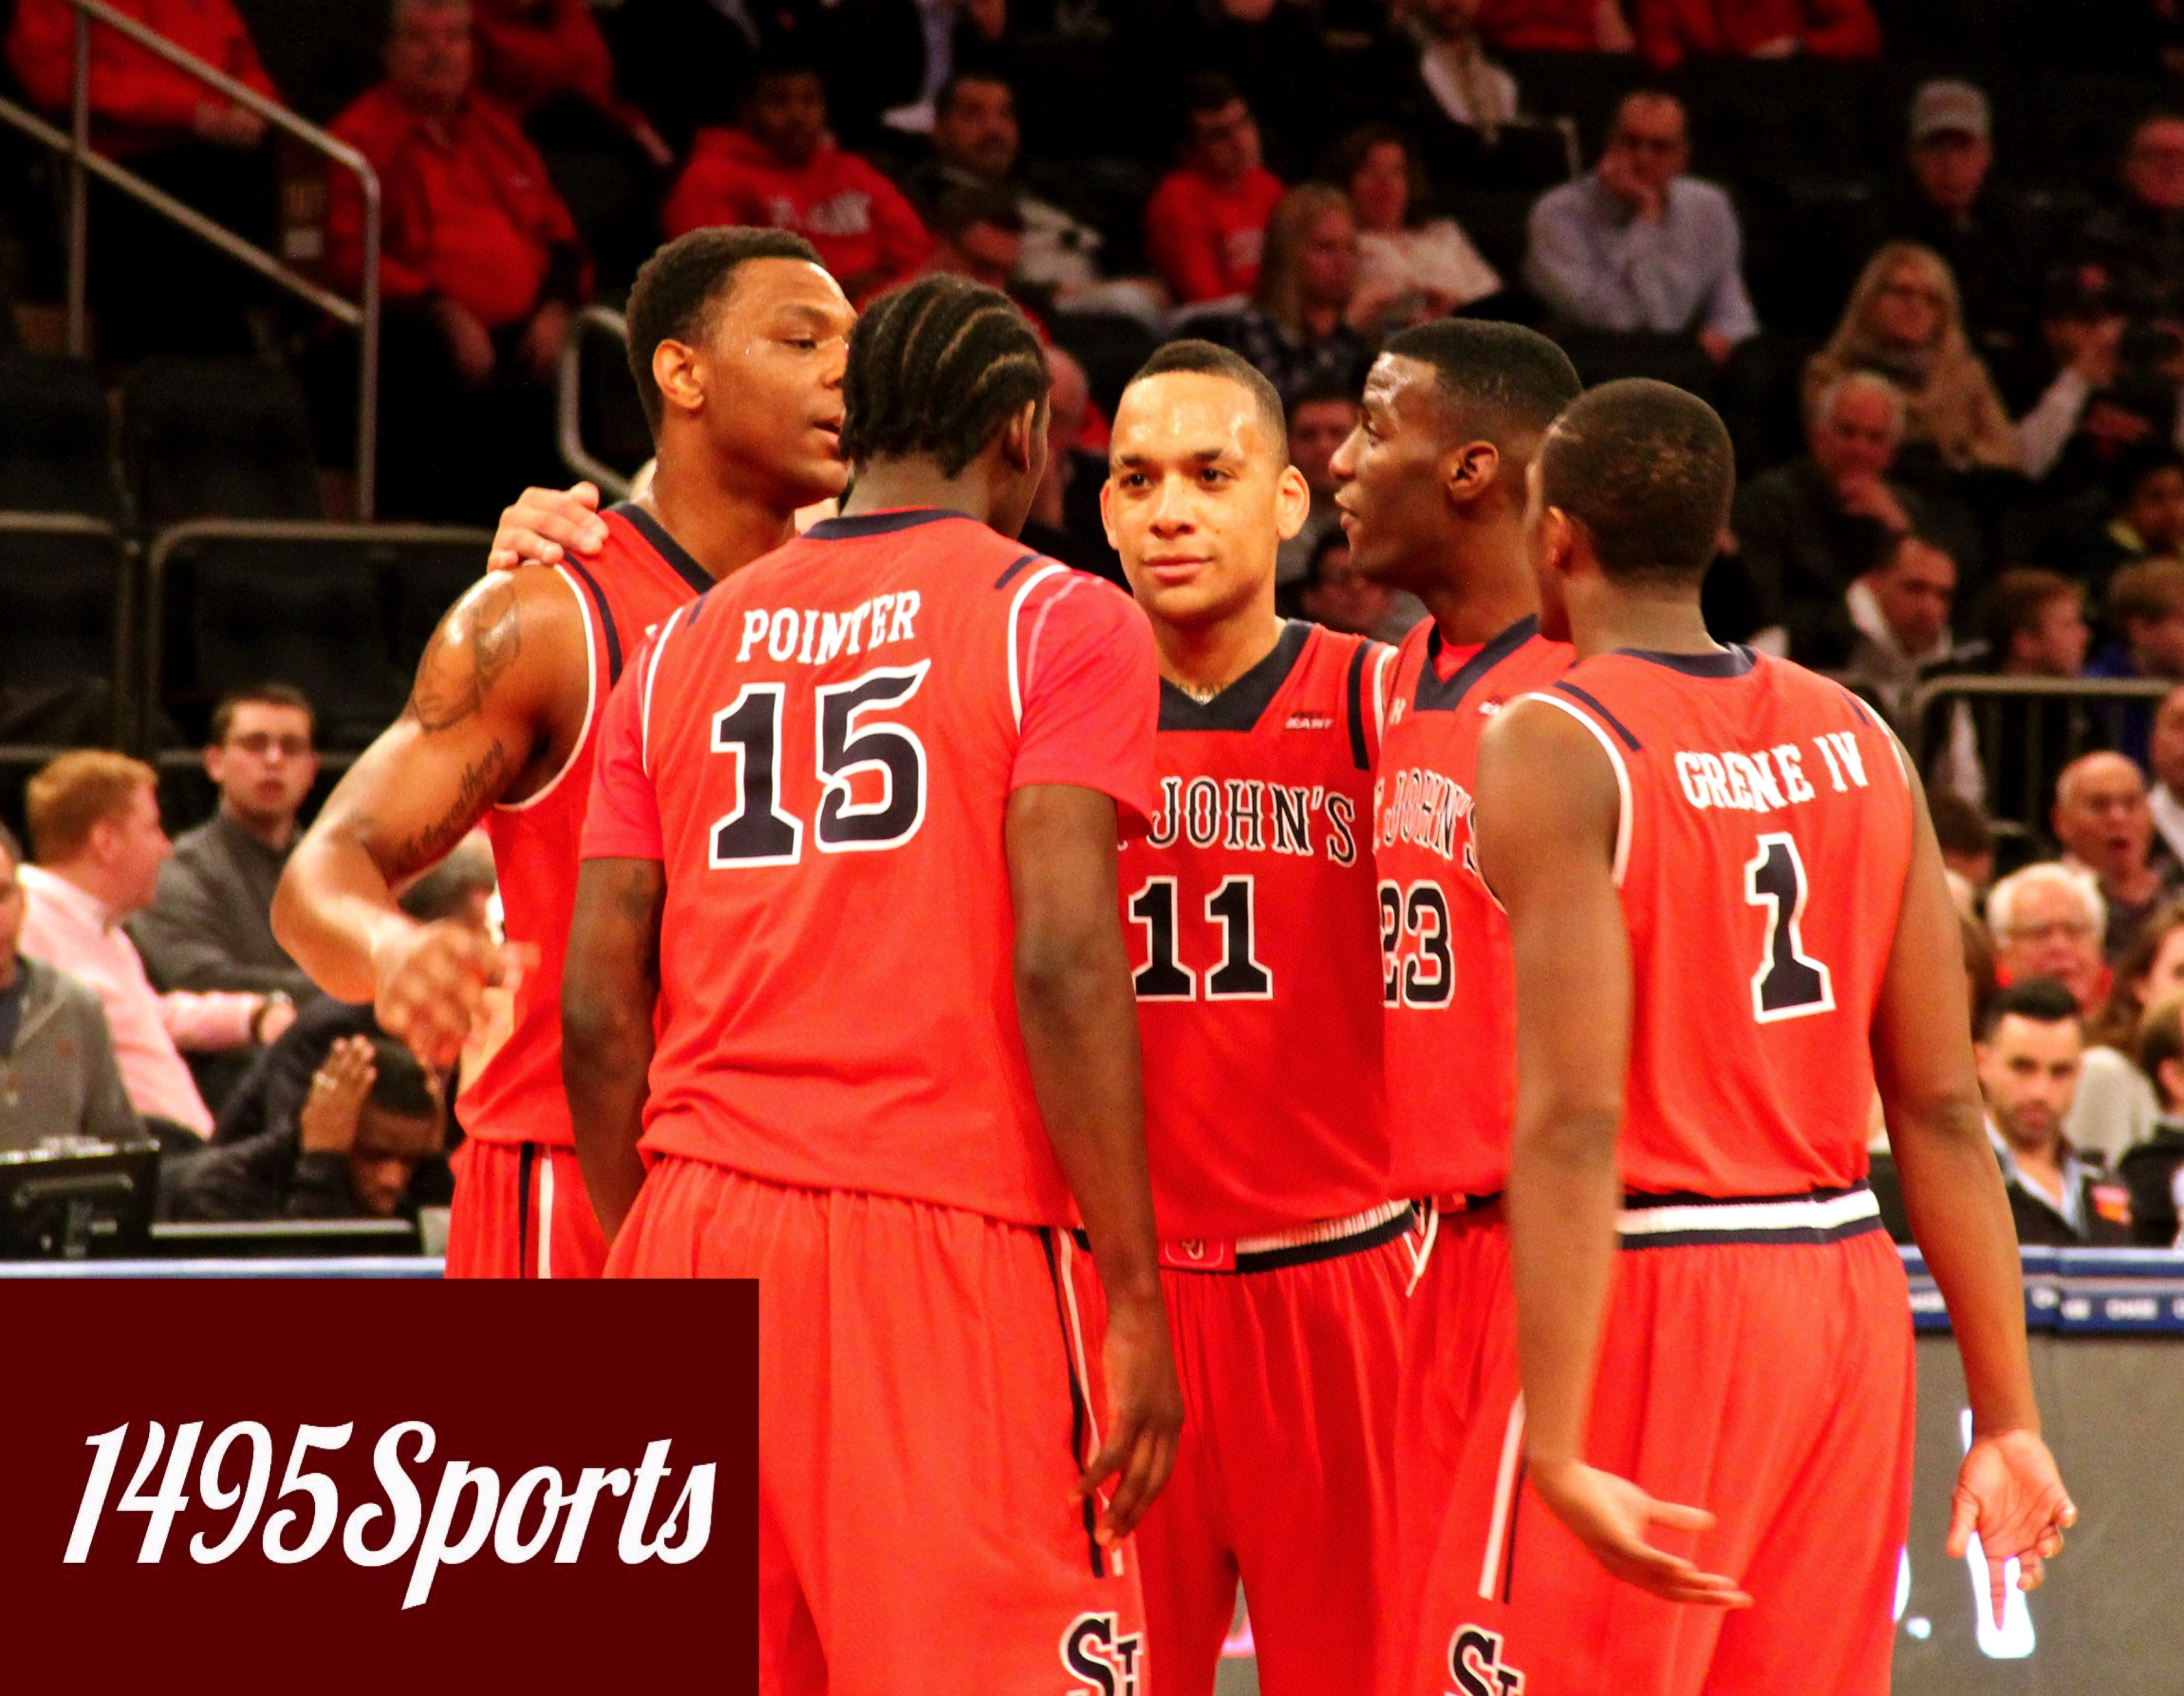 st. john's men's basketball awarded by both big east and ap | 1495sports